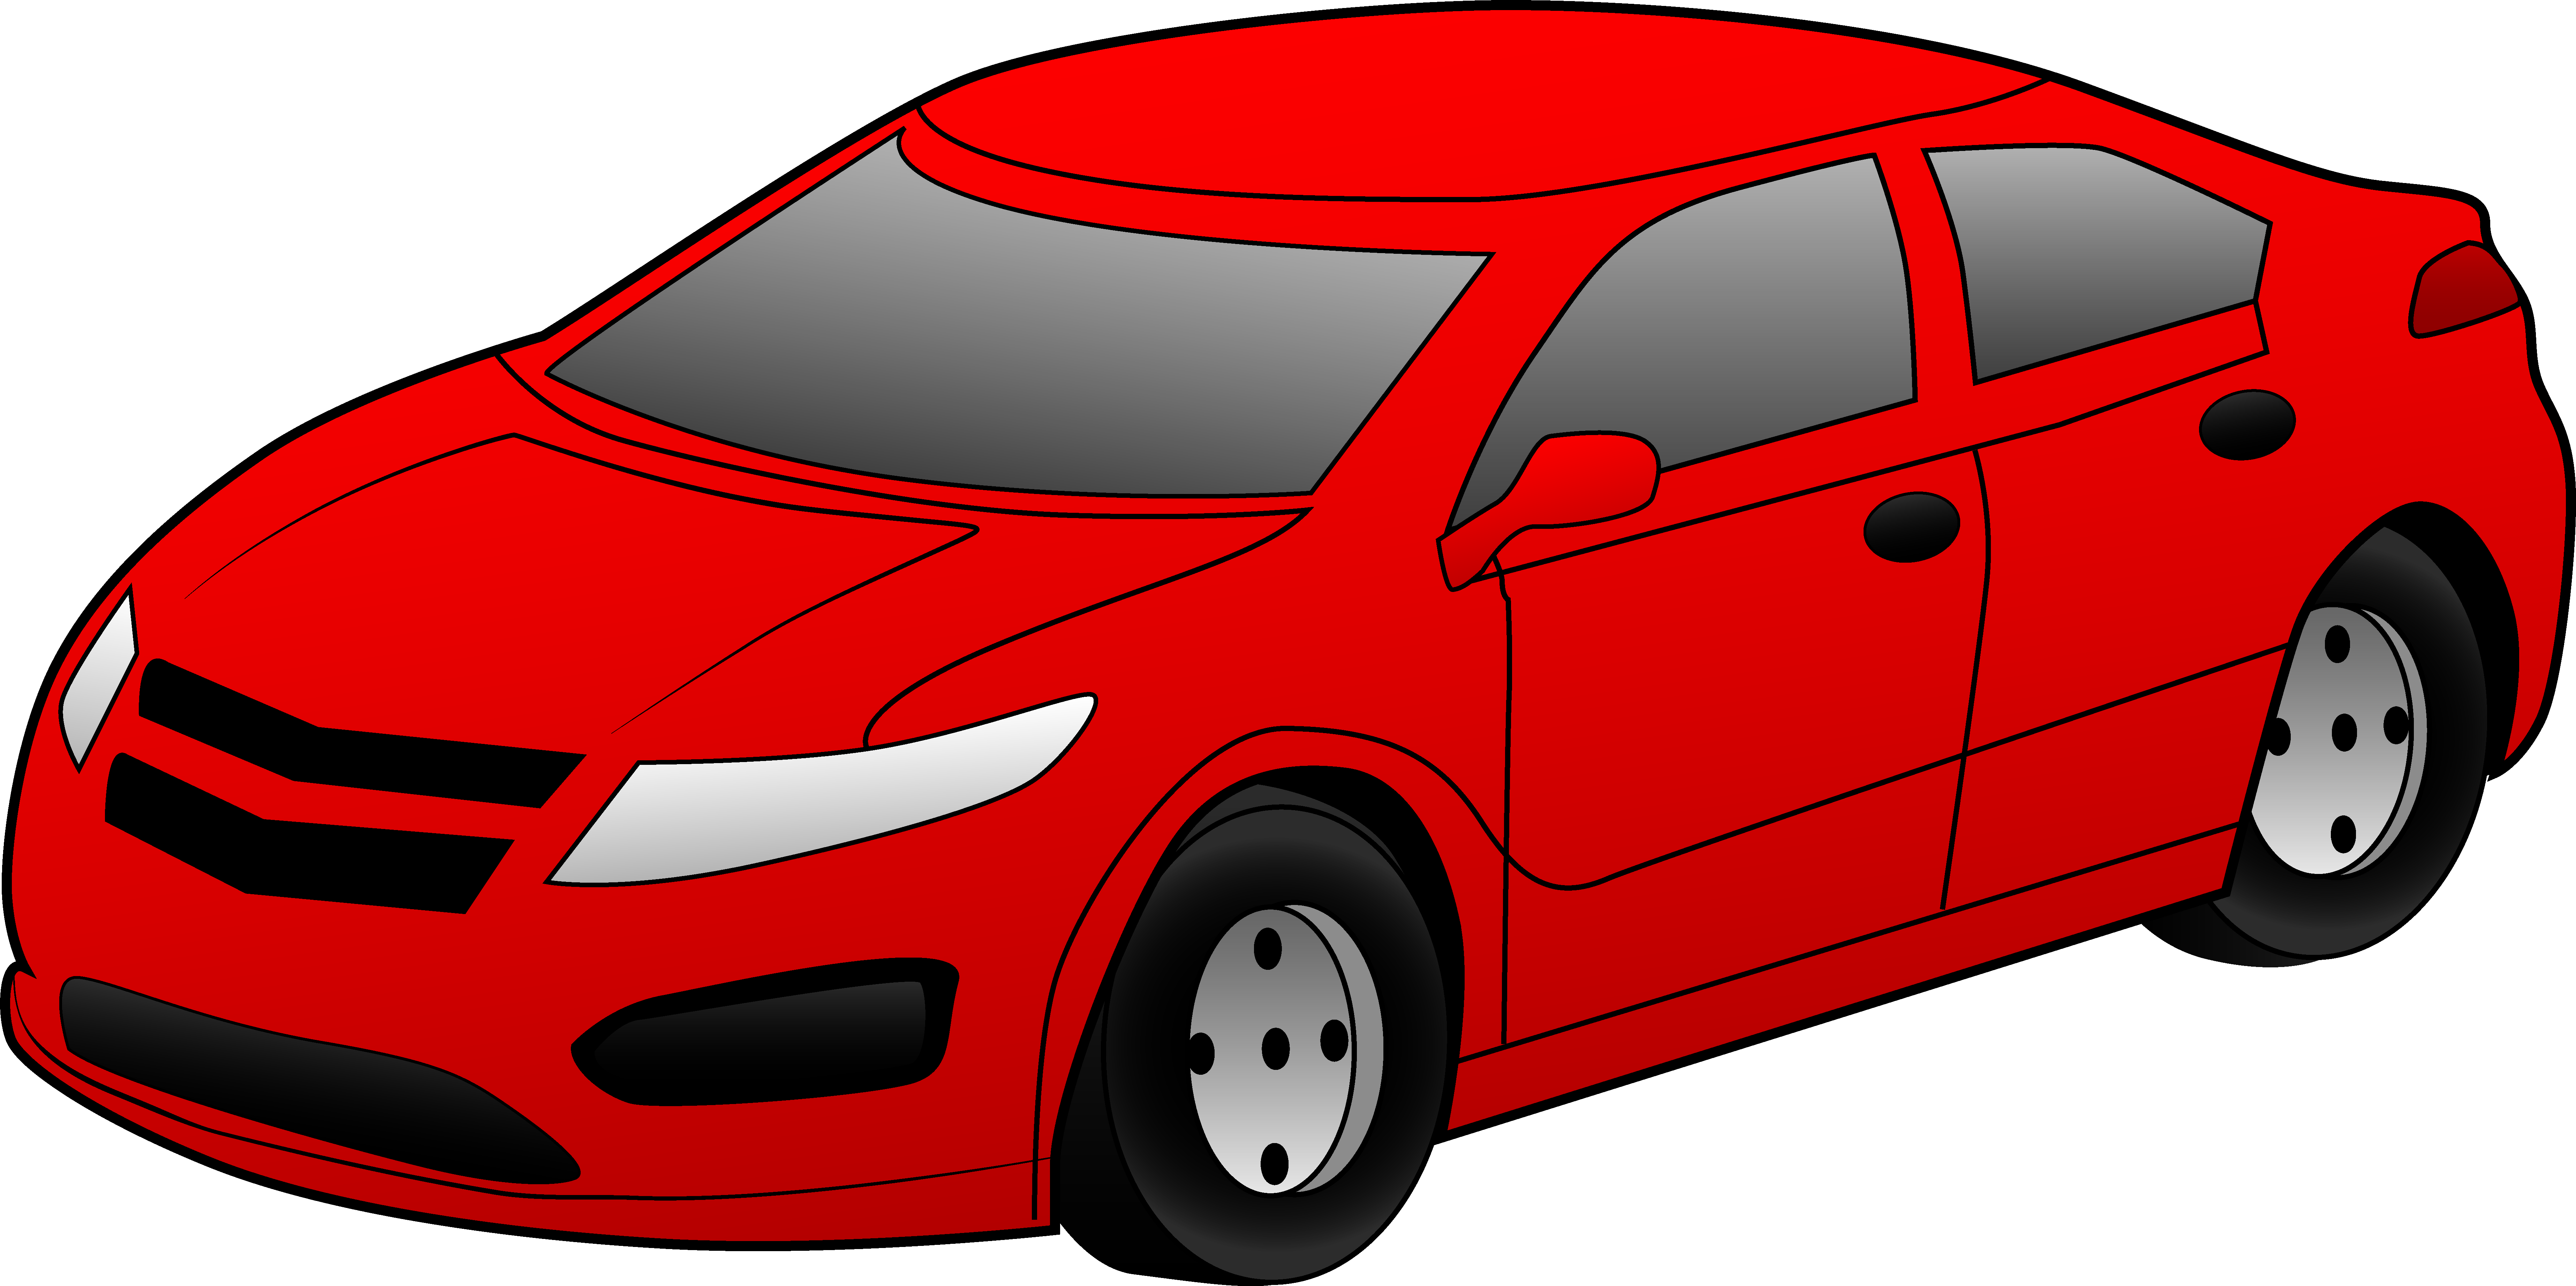 Images Of Car Clipart.